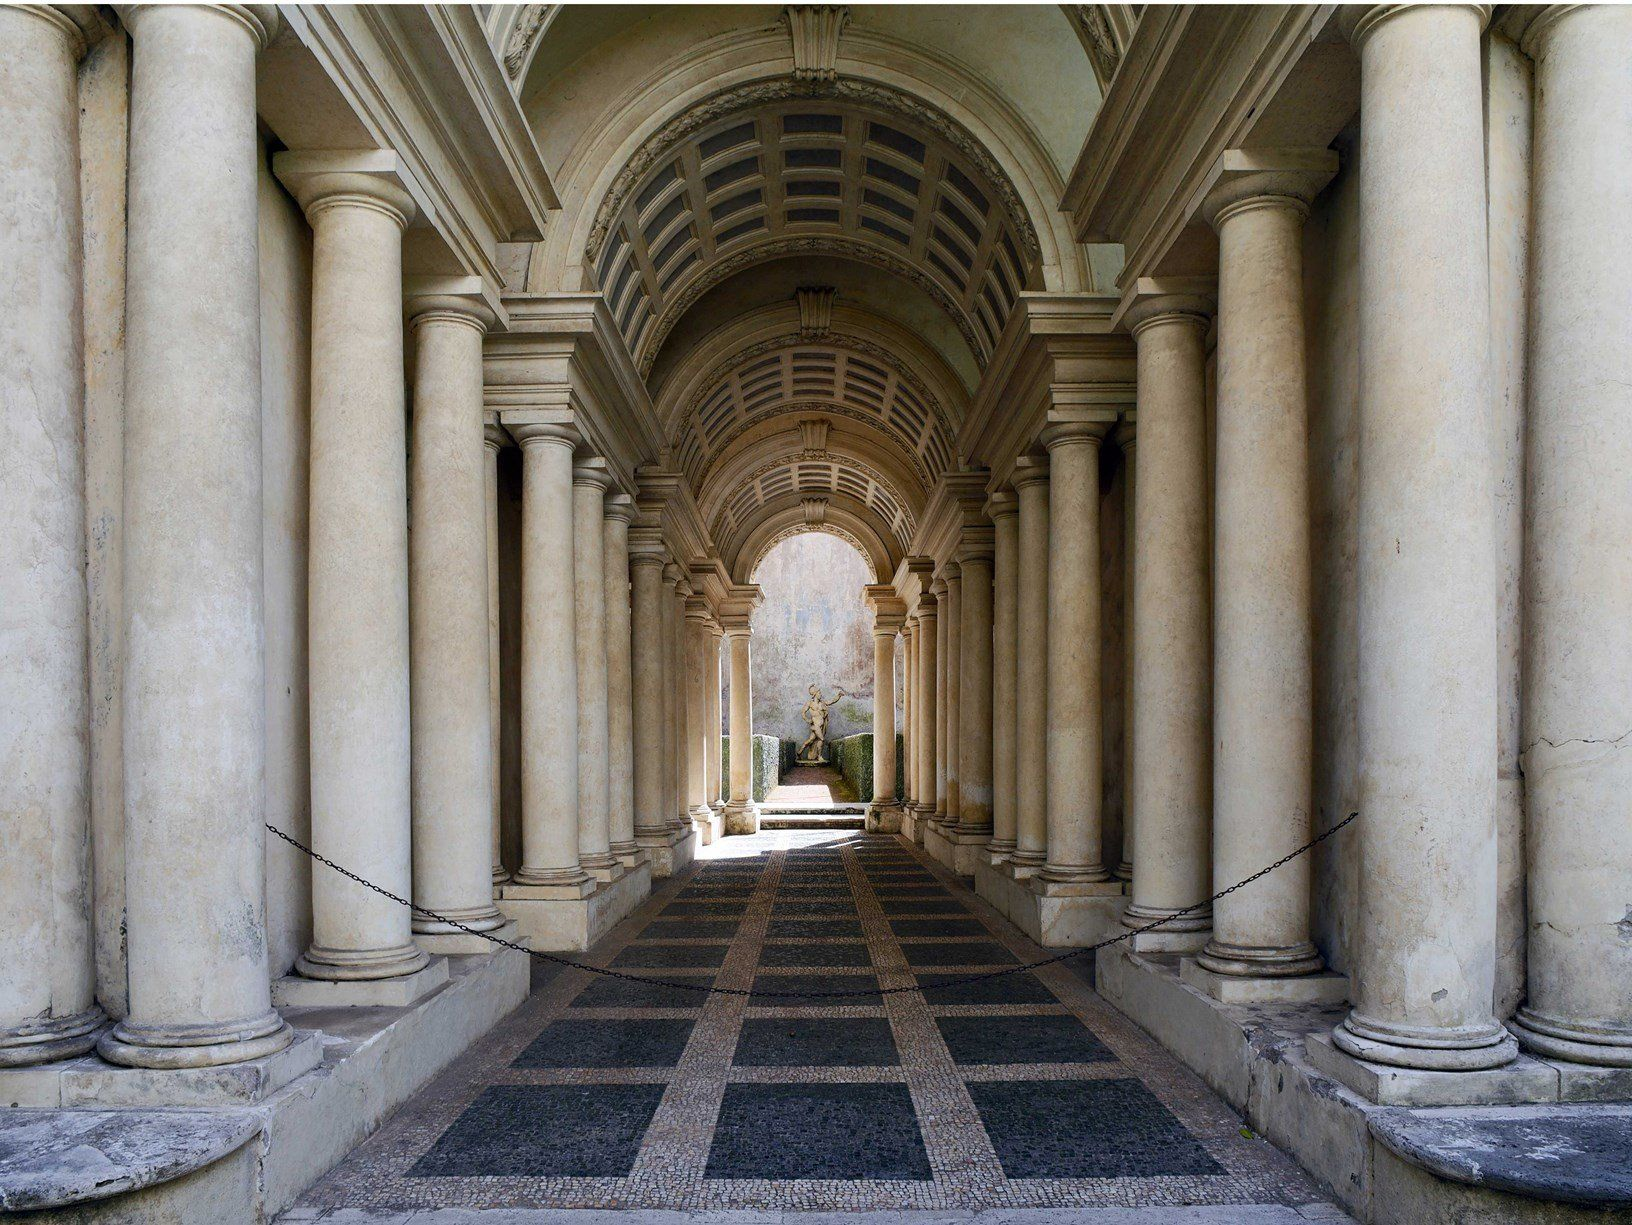 Forced perspective gallery by Francesco Borromini; Livioandronico2013 - Own | Creative Commons Attribution-Share Alike 4.0